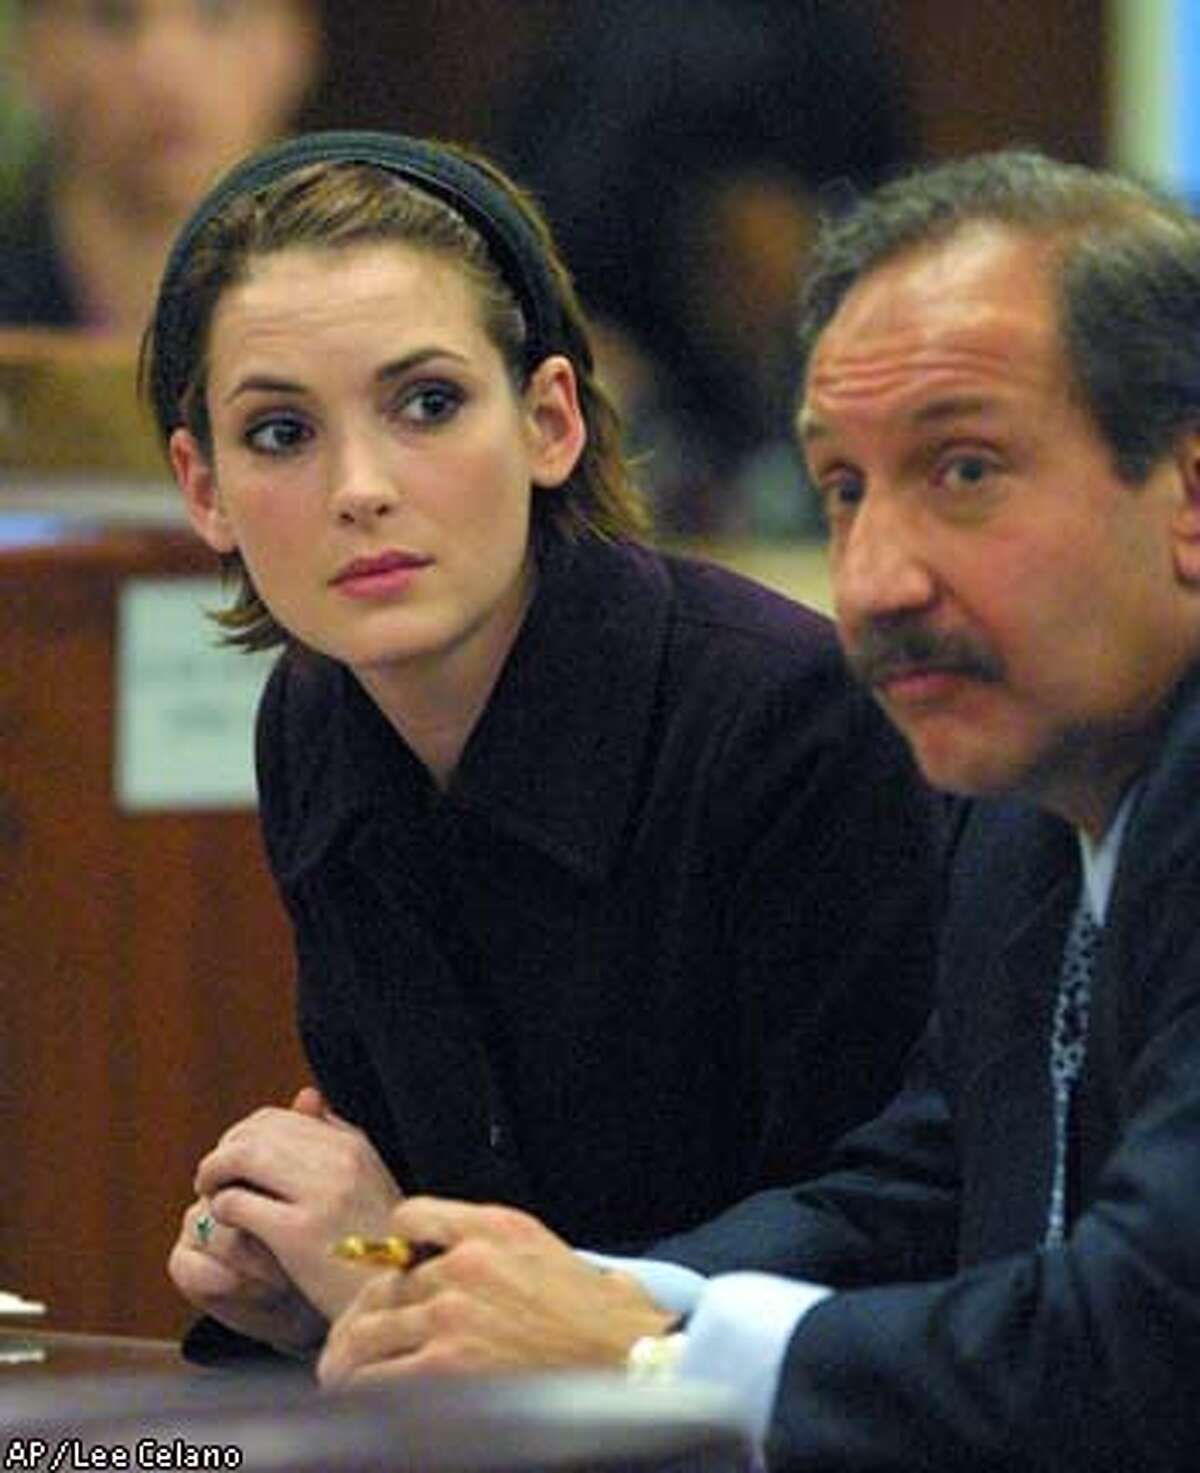 Actress , left, sits with her defense attorney Mark Geragos as the the verdict is read in her shoplifting trial Wednesday, Nov. 6, 2002, at the courthouse in Beverly Hills, Calif. The jury found Ryder guilty of felony grand theft and vandalism but cleared her of burglary charges. (AP Photo/Lee Celano, Pool)